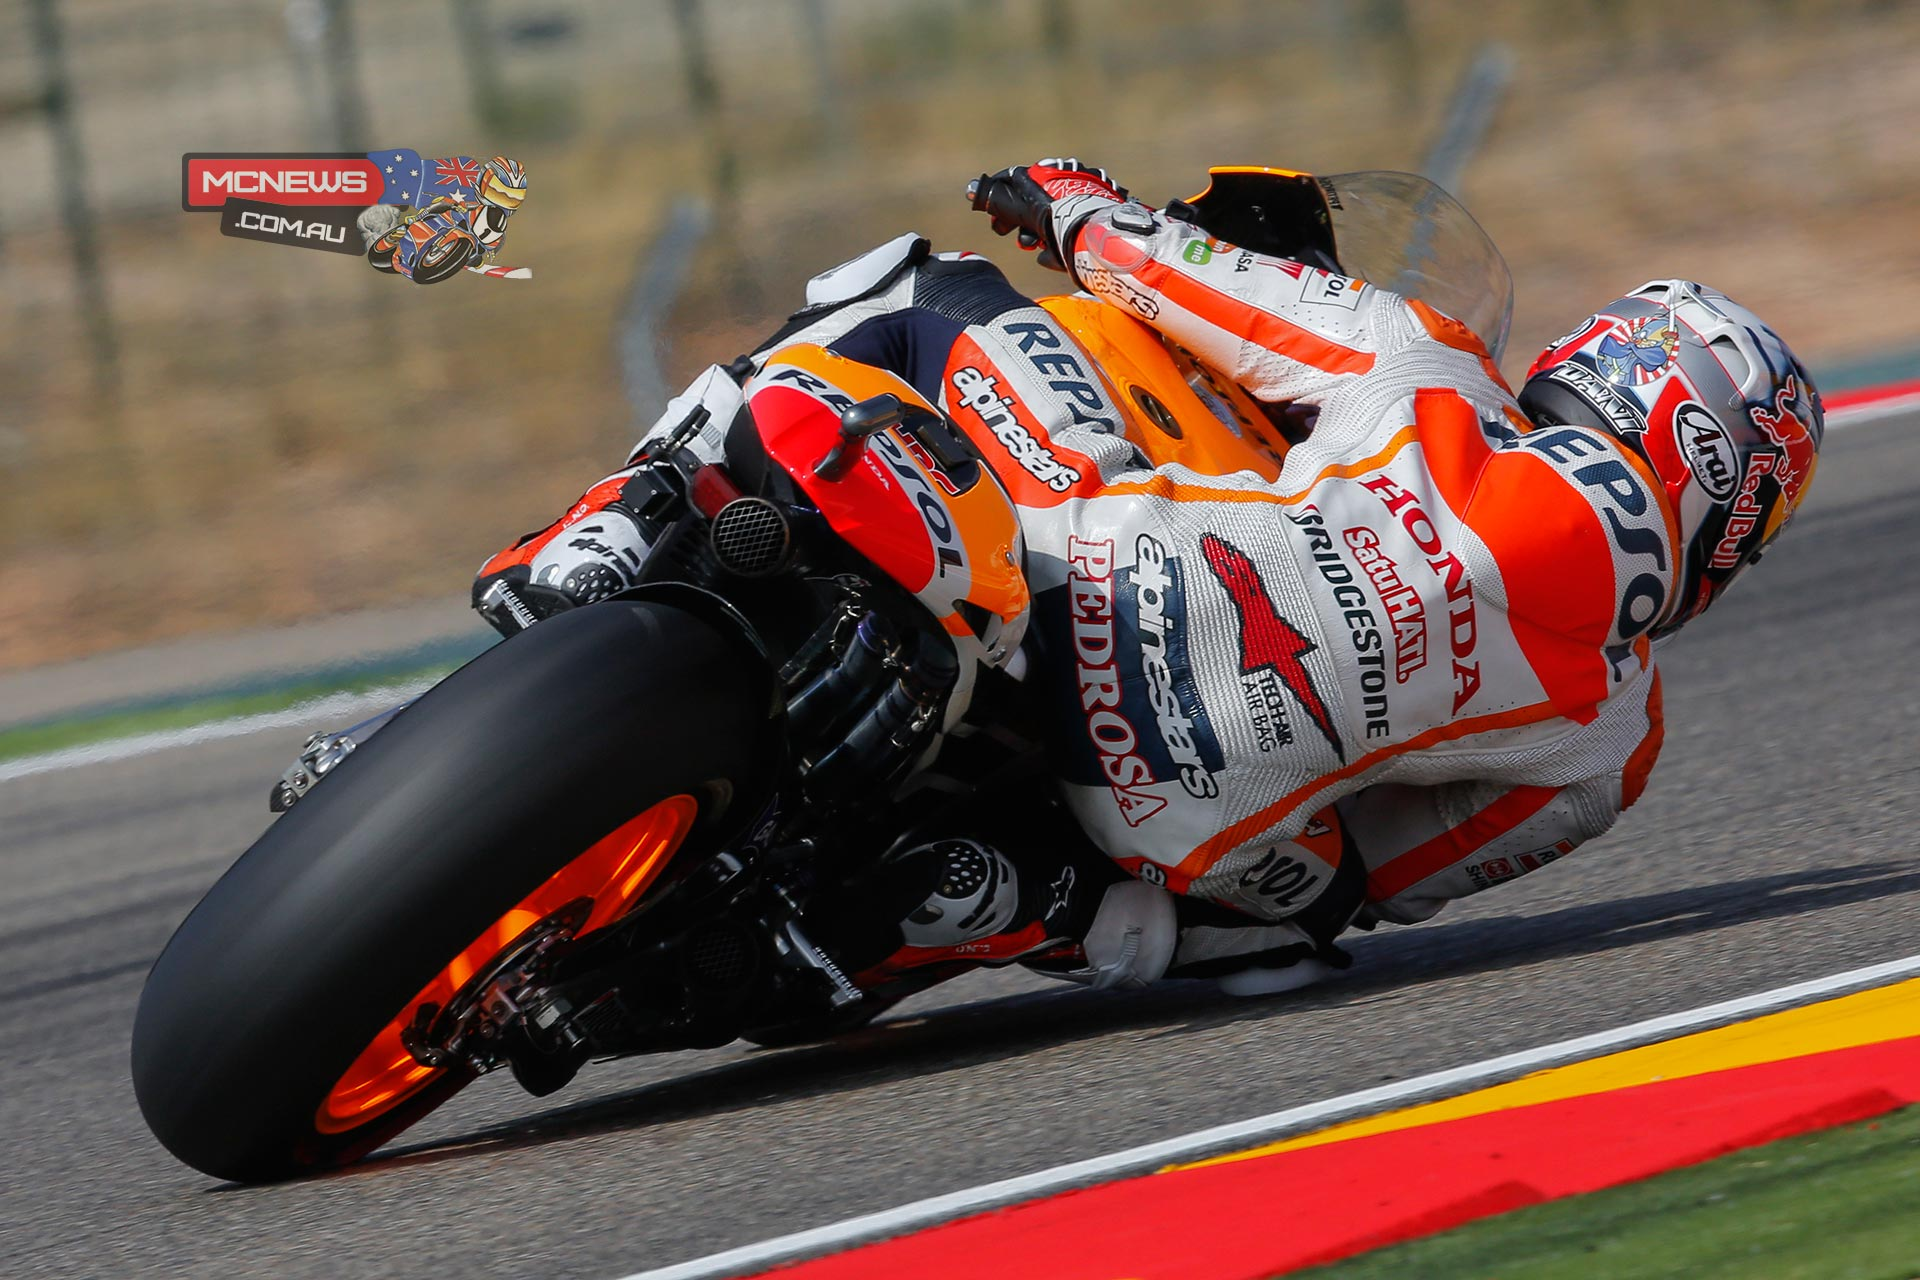 """Dani Pedrosa, Repsol Honda: 2nd, 1m 47.549s - """"Today we had a good qualifying session. In other races we have had difficulties because we haven't started from the front, but today we managed to set a good lap. I think that the practice sessions also went well for us, and tomorrow in the race we will be as competitive as possible. Marc is setting some very good times, so we will try to fight for the win against him! It will be important to get a good start, although the race is long and the pace will play a big part, so we will have to keep our concentration on every corner."""""""